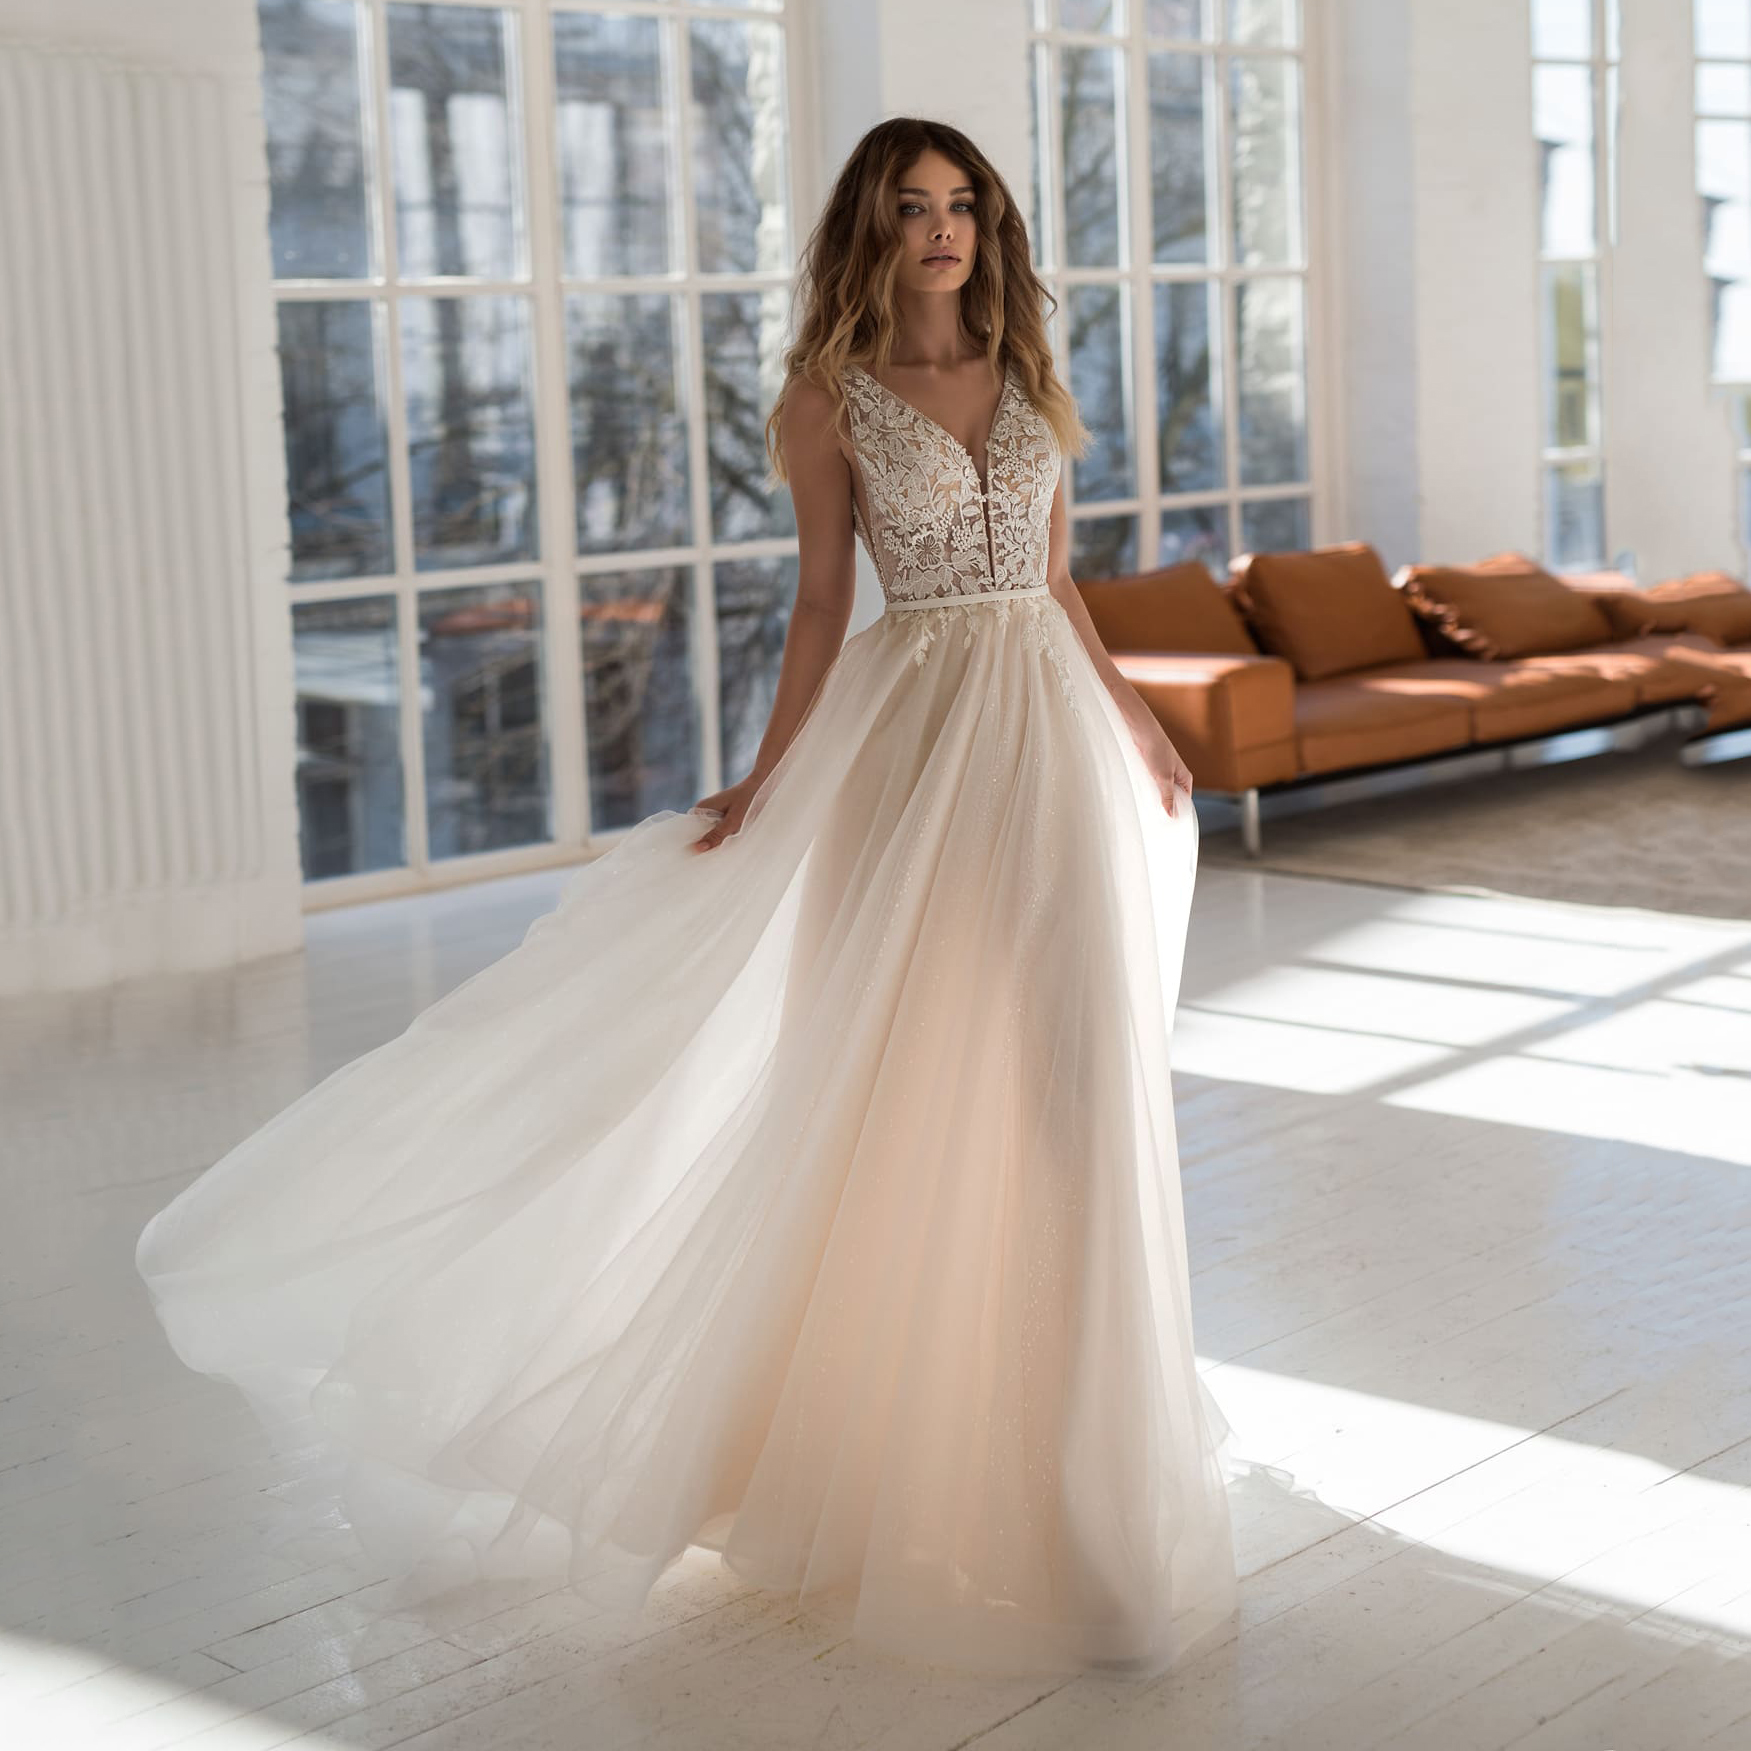 Summer Beach Boho A-Line Wedding Dresses Illusion V Neck Backless Applique Lace Top Tulle Floor Length Custom Made Bridal Gowns